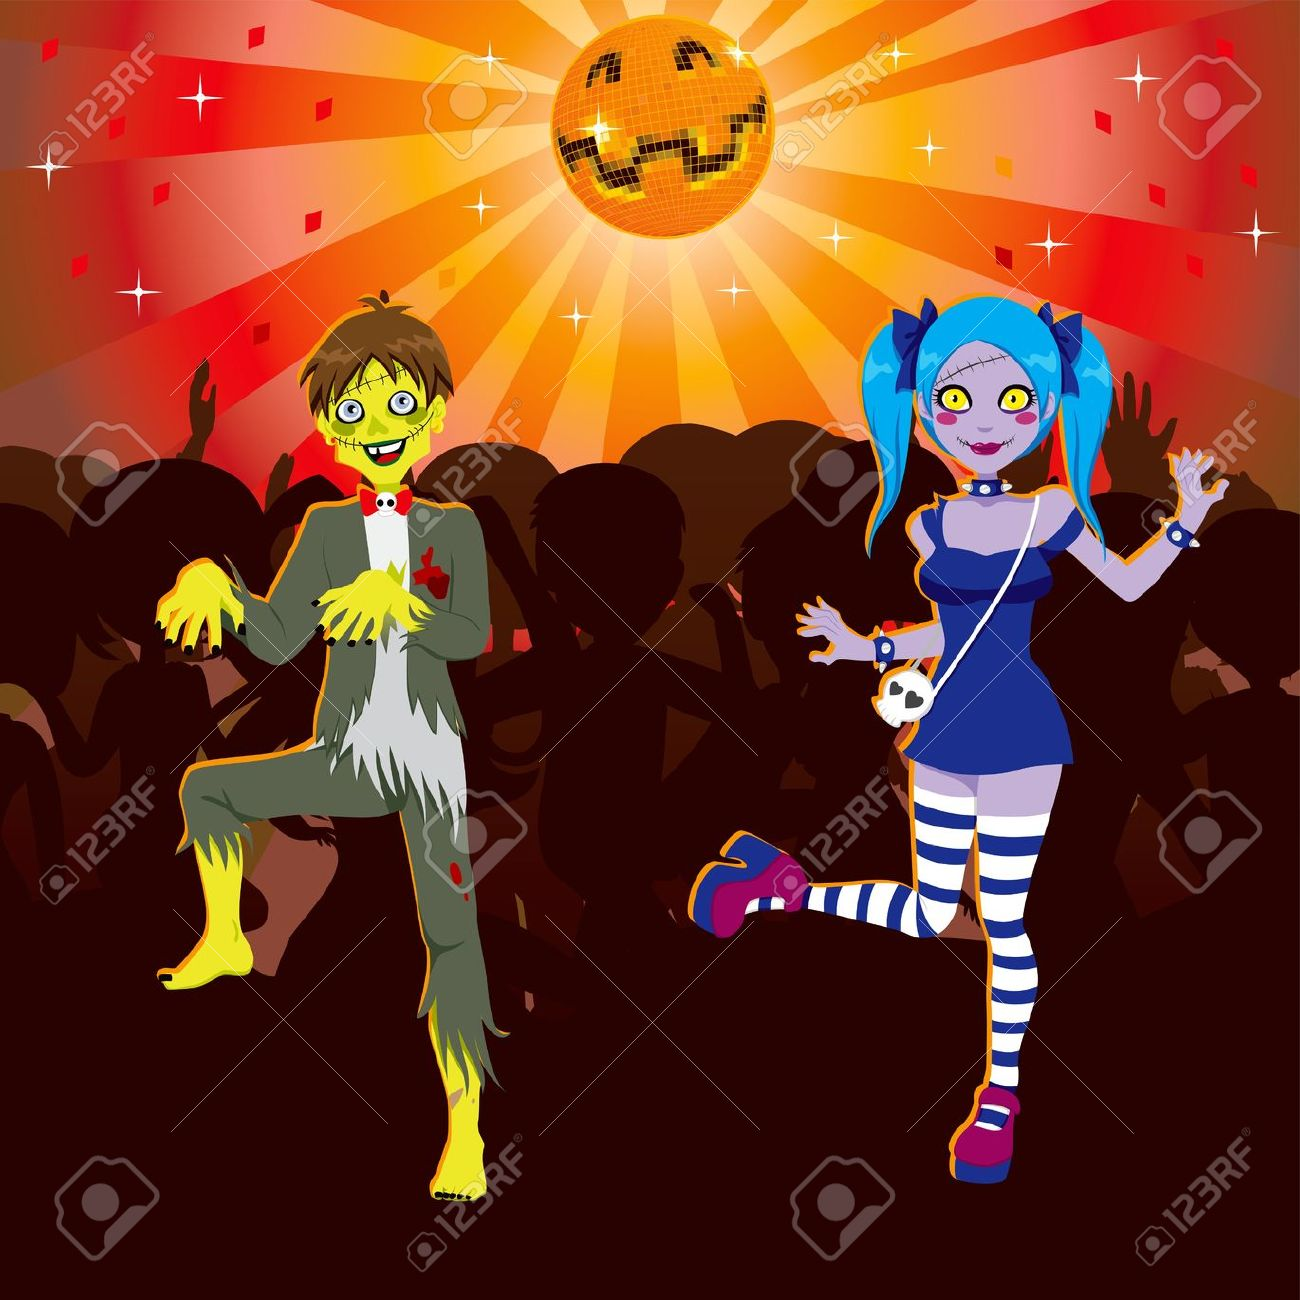 Halloween character pumpkin girl clipart picture stock Halloween character pumpkin girl clipart - ClipartFest picture stock